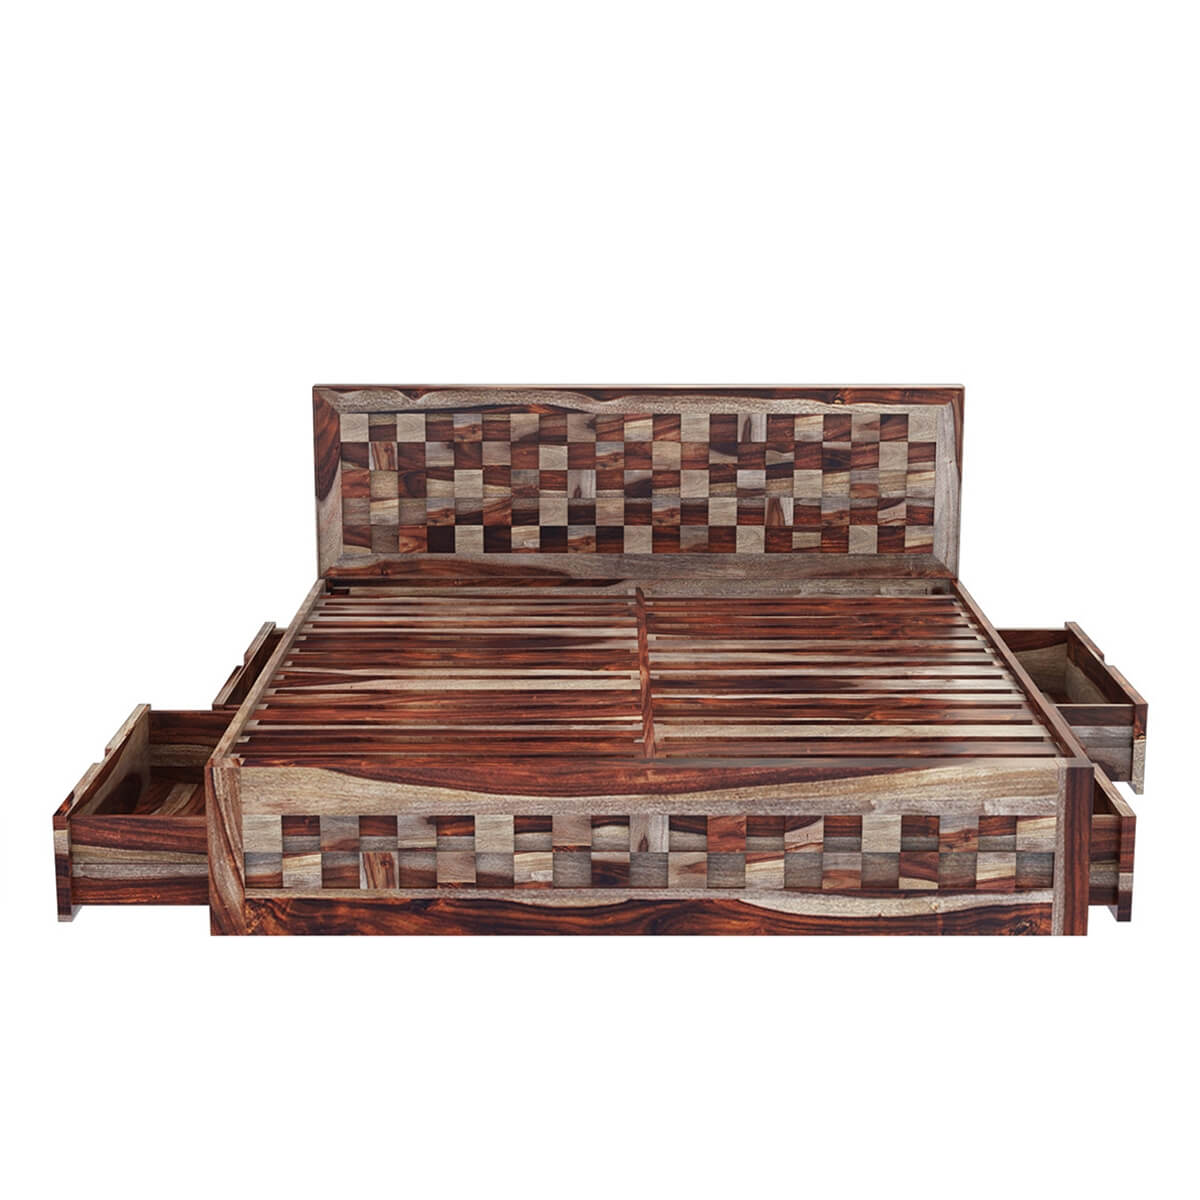 Checkered solid wood captains storage platform bed Wood platform bed